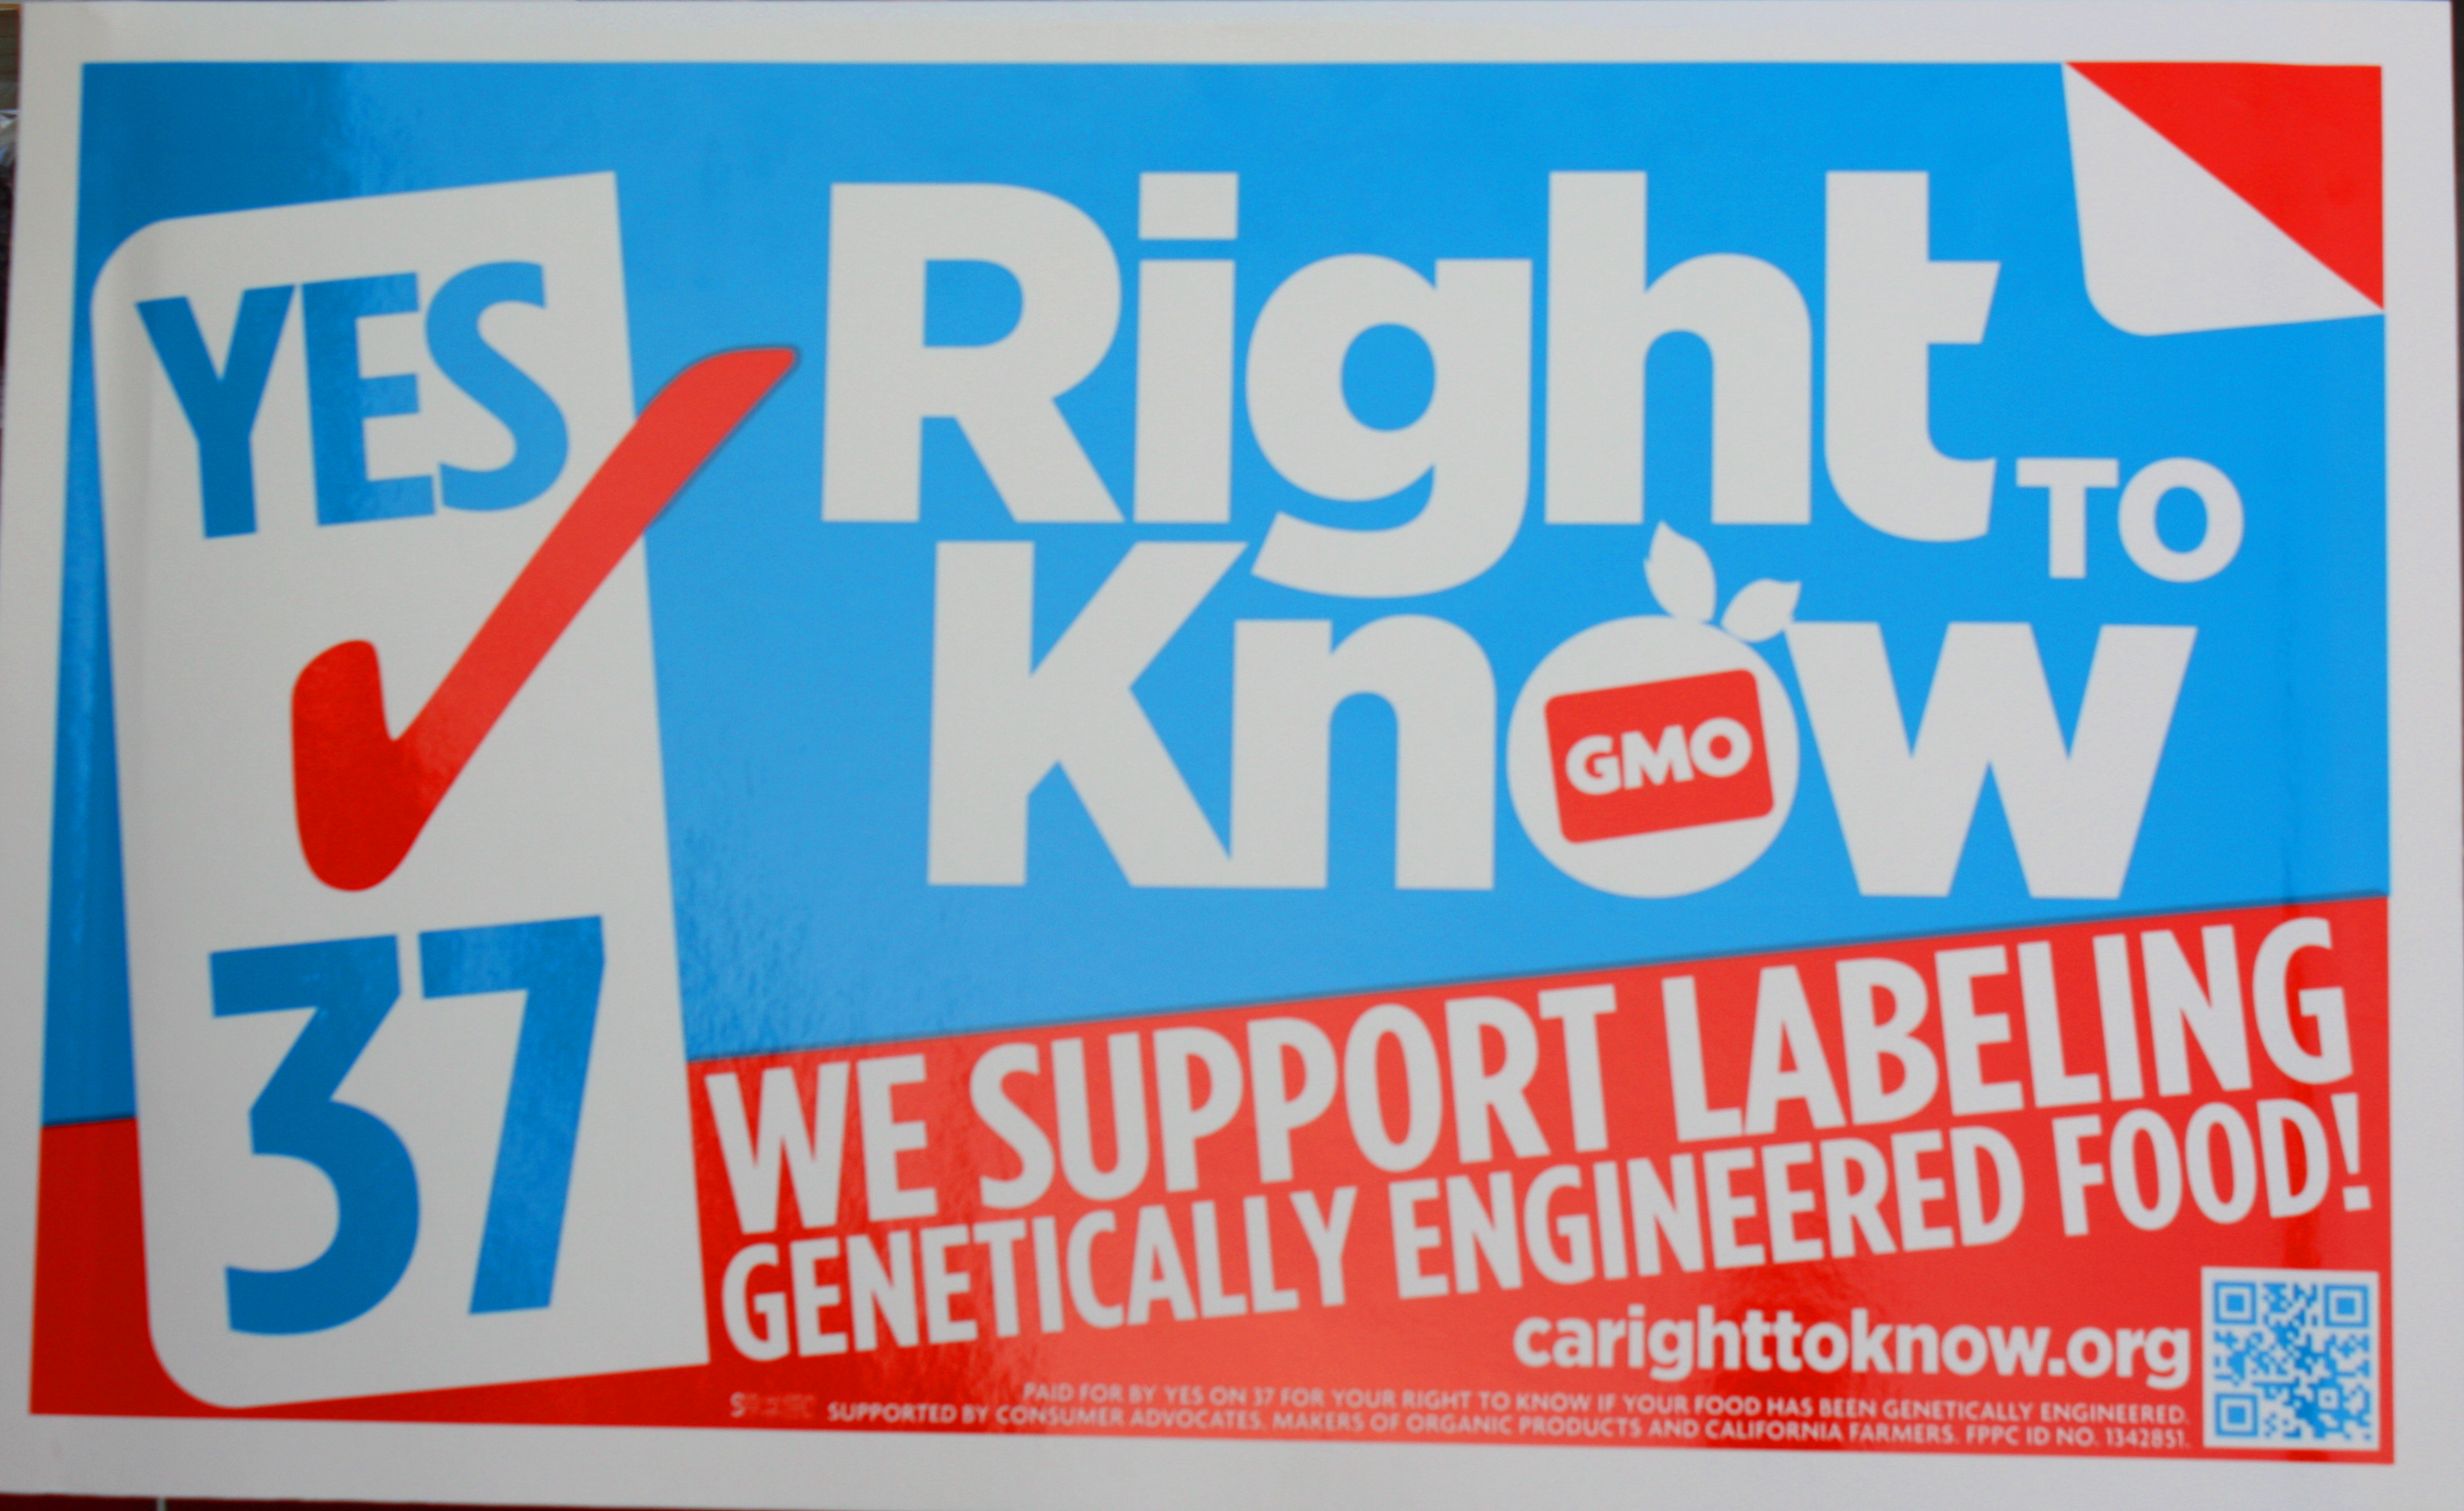 Labels for GMO Foods Are a Bad Idea